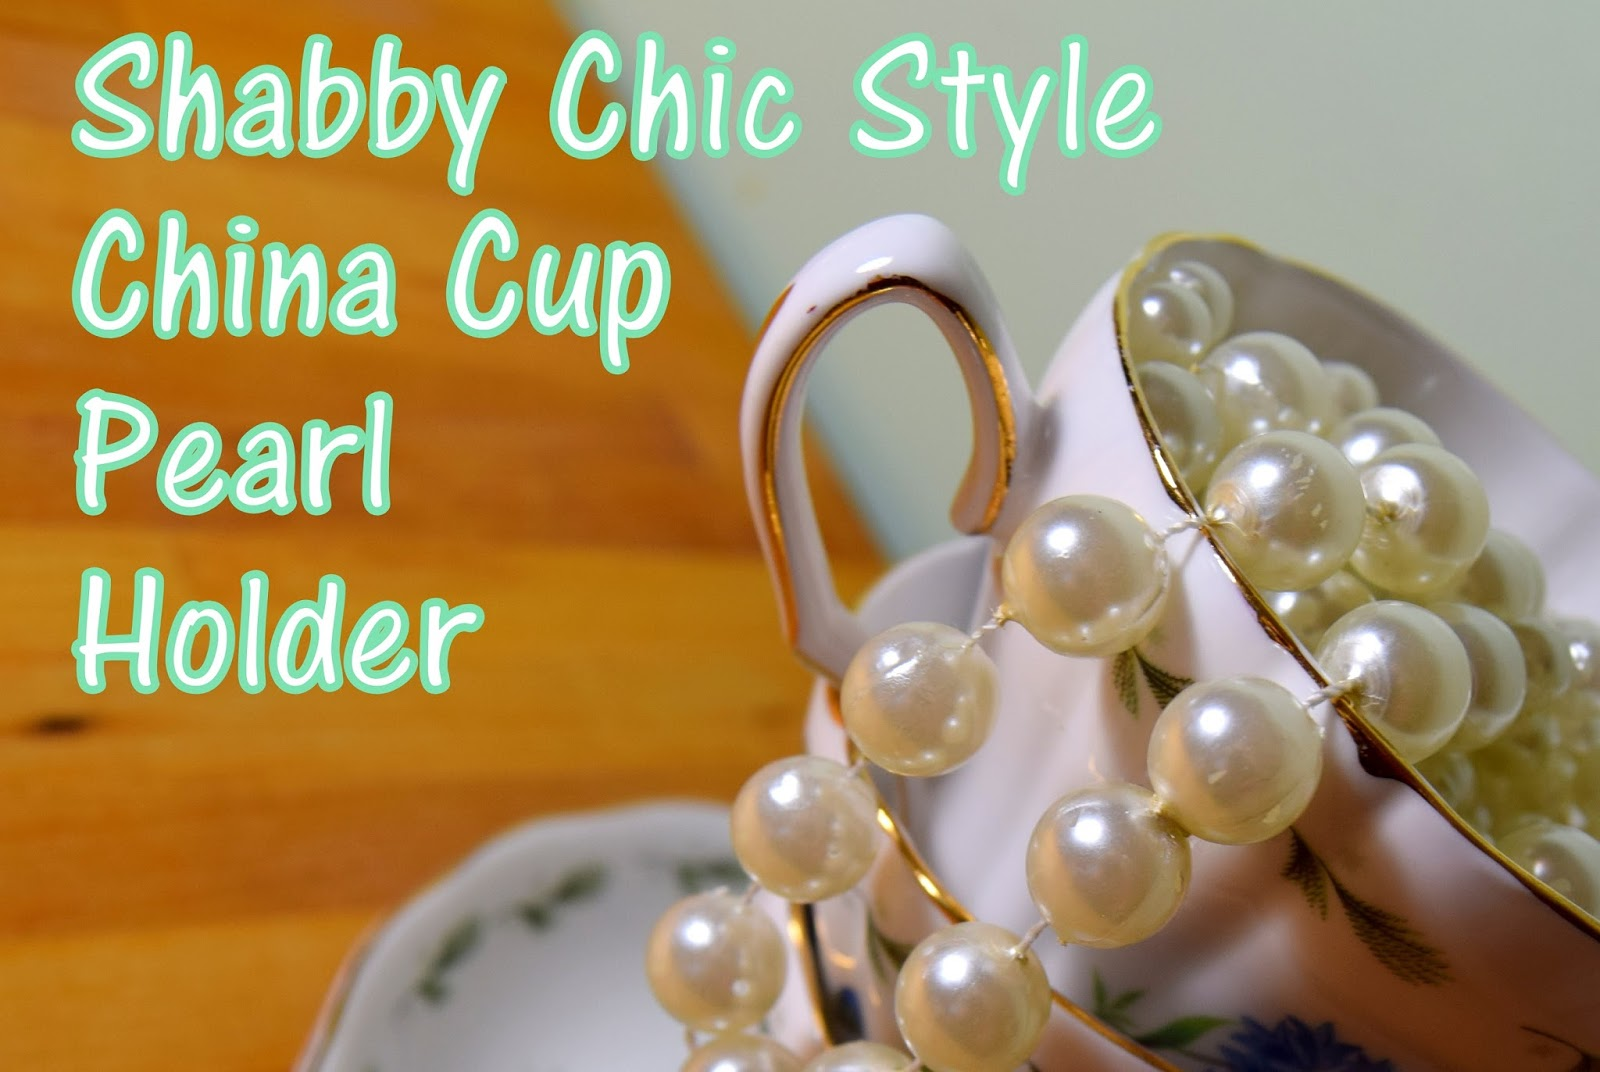 Shabby Chic Style: China Cups And Pearls